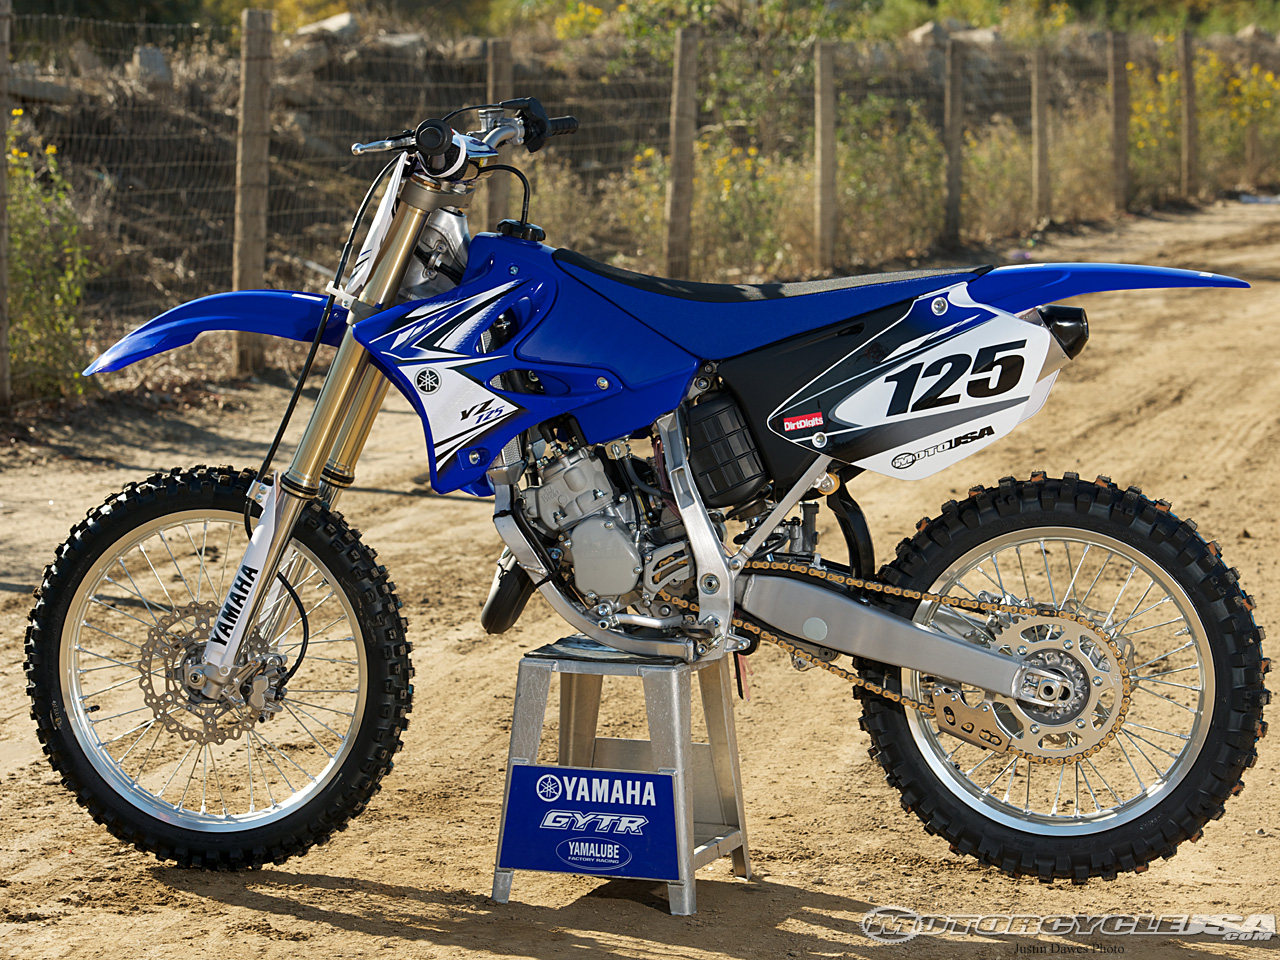 2003 yamaha yz 125 pics specs and information. Black Bedroom Furniture Sets. Home Design Ideas